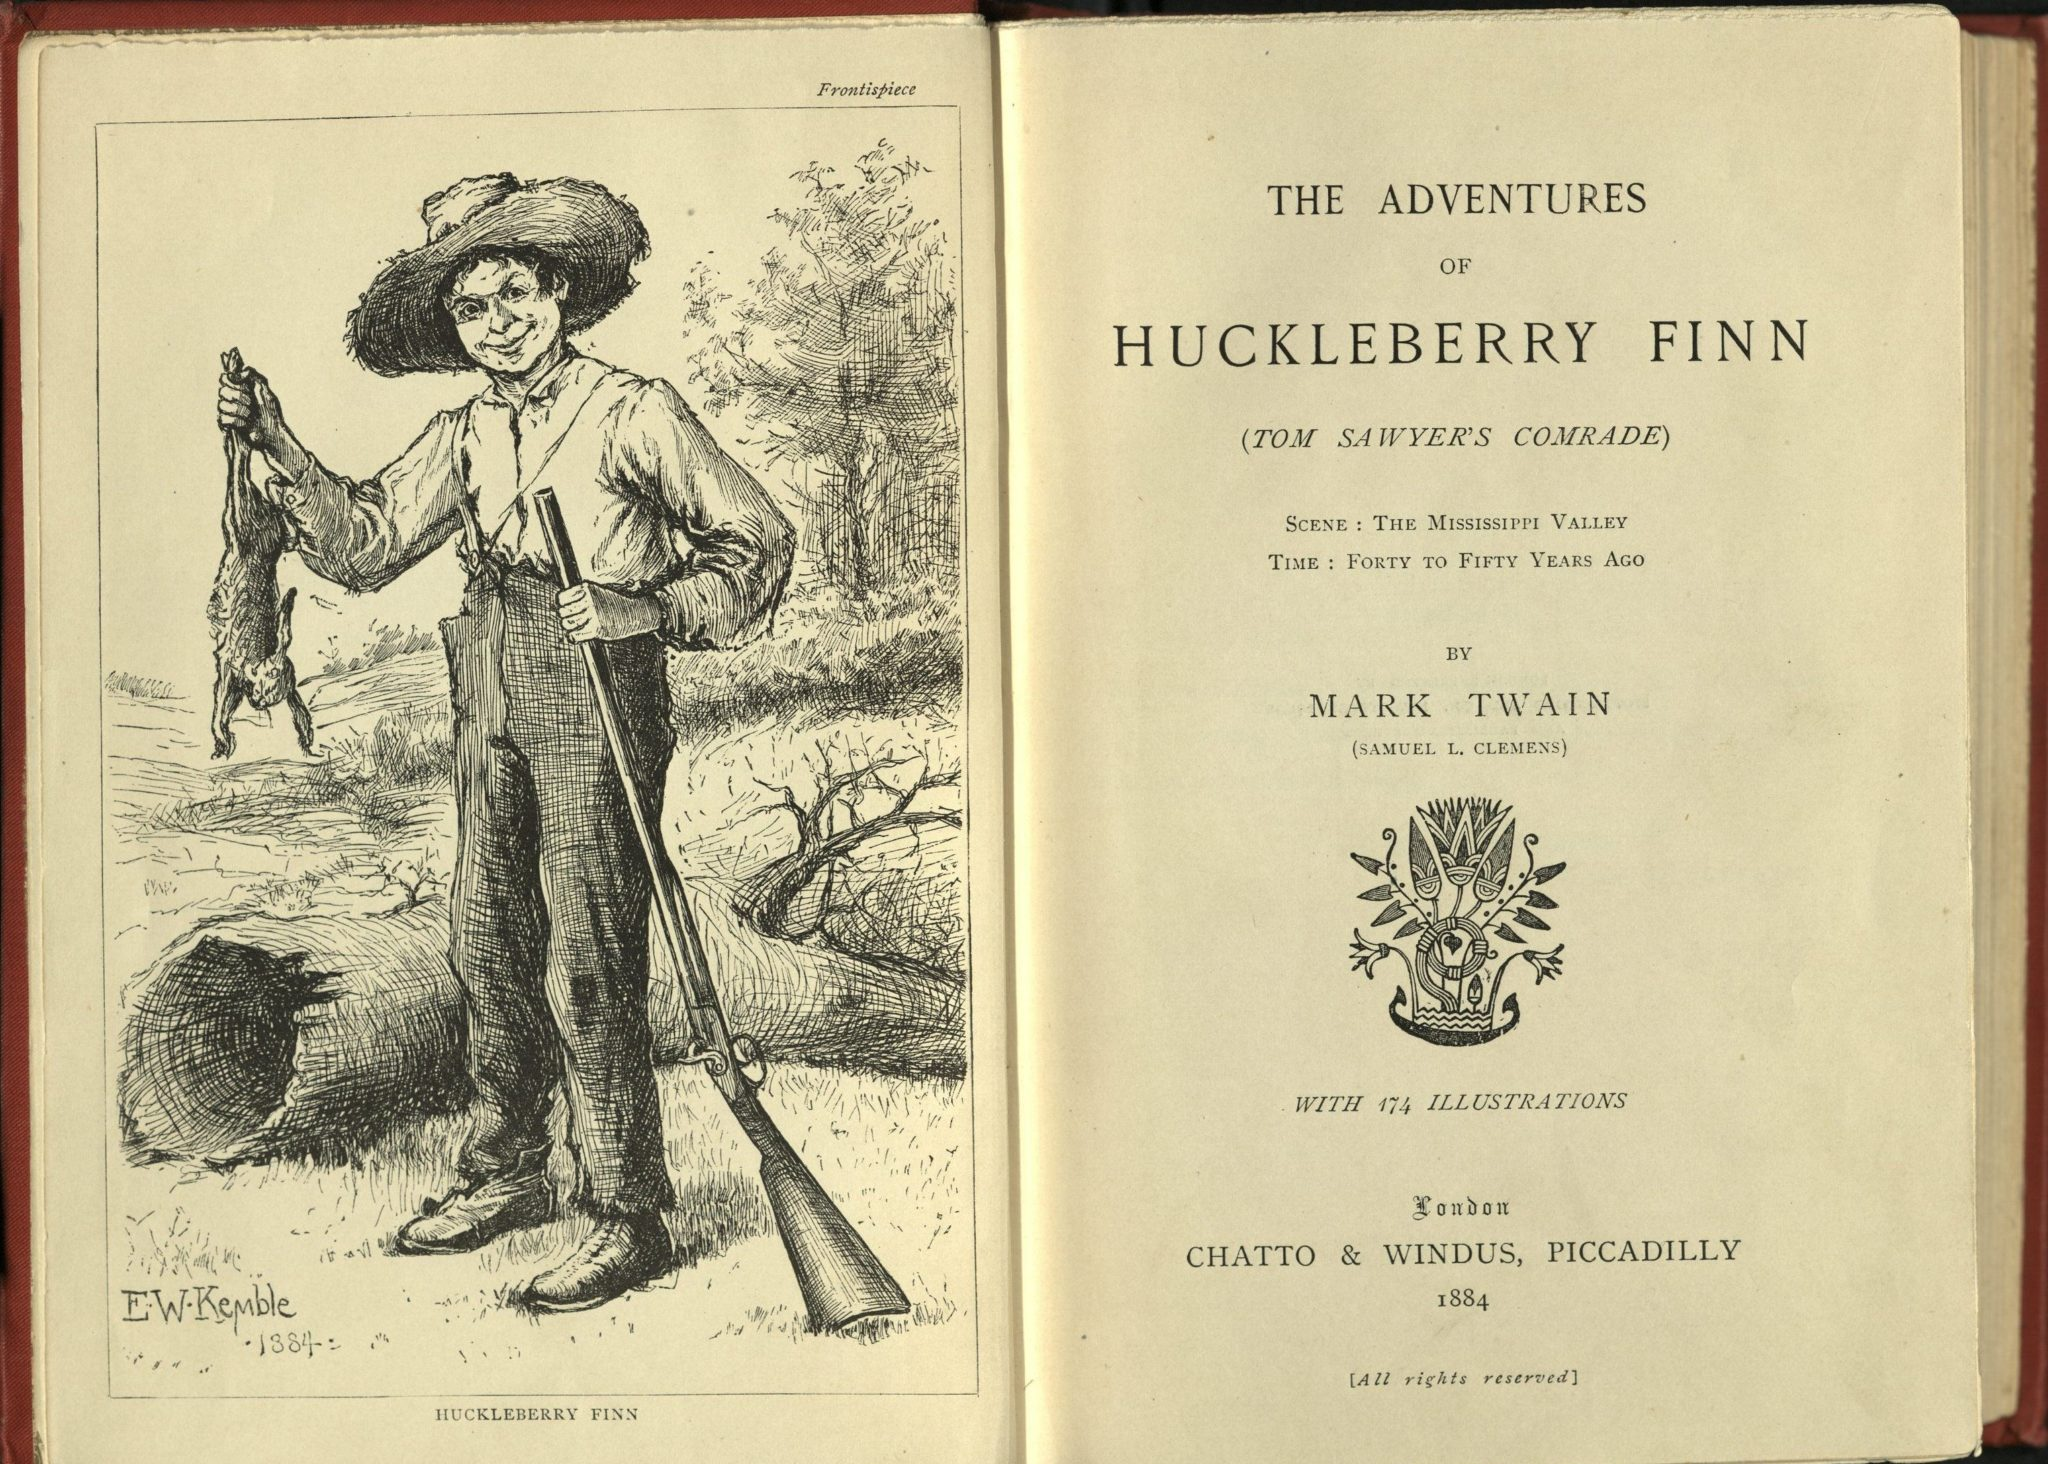 critical essays on the adventures of huckleberry finn American dream essay extended definition piece in mark twain's novel the adventures of huckleberry finn, the strategies of irony, characterization.